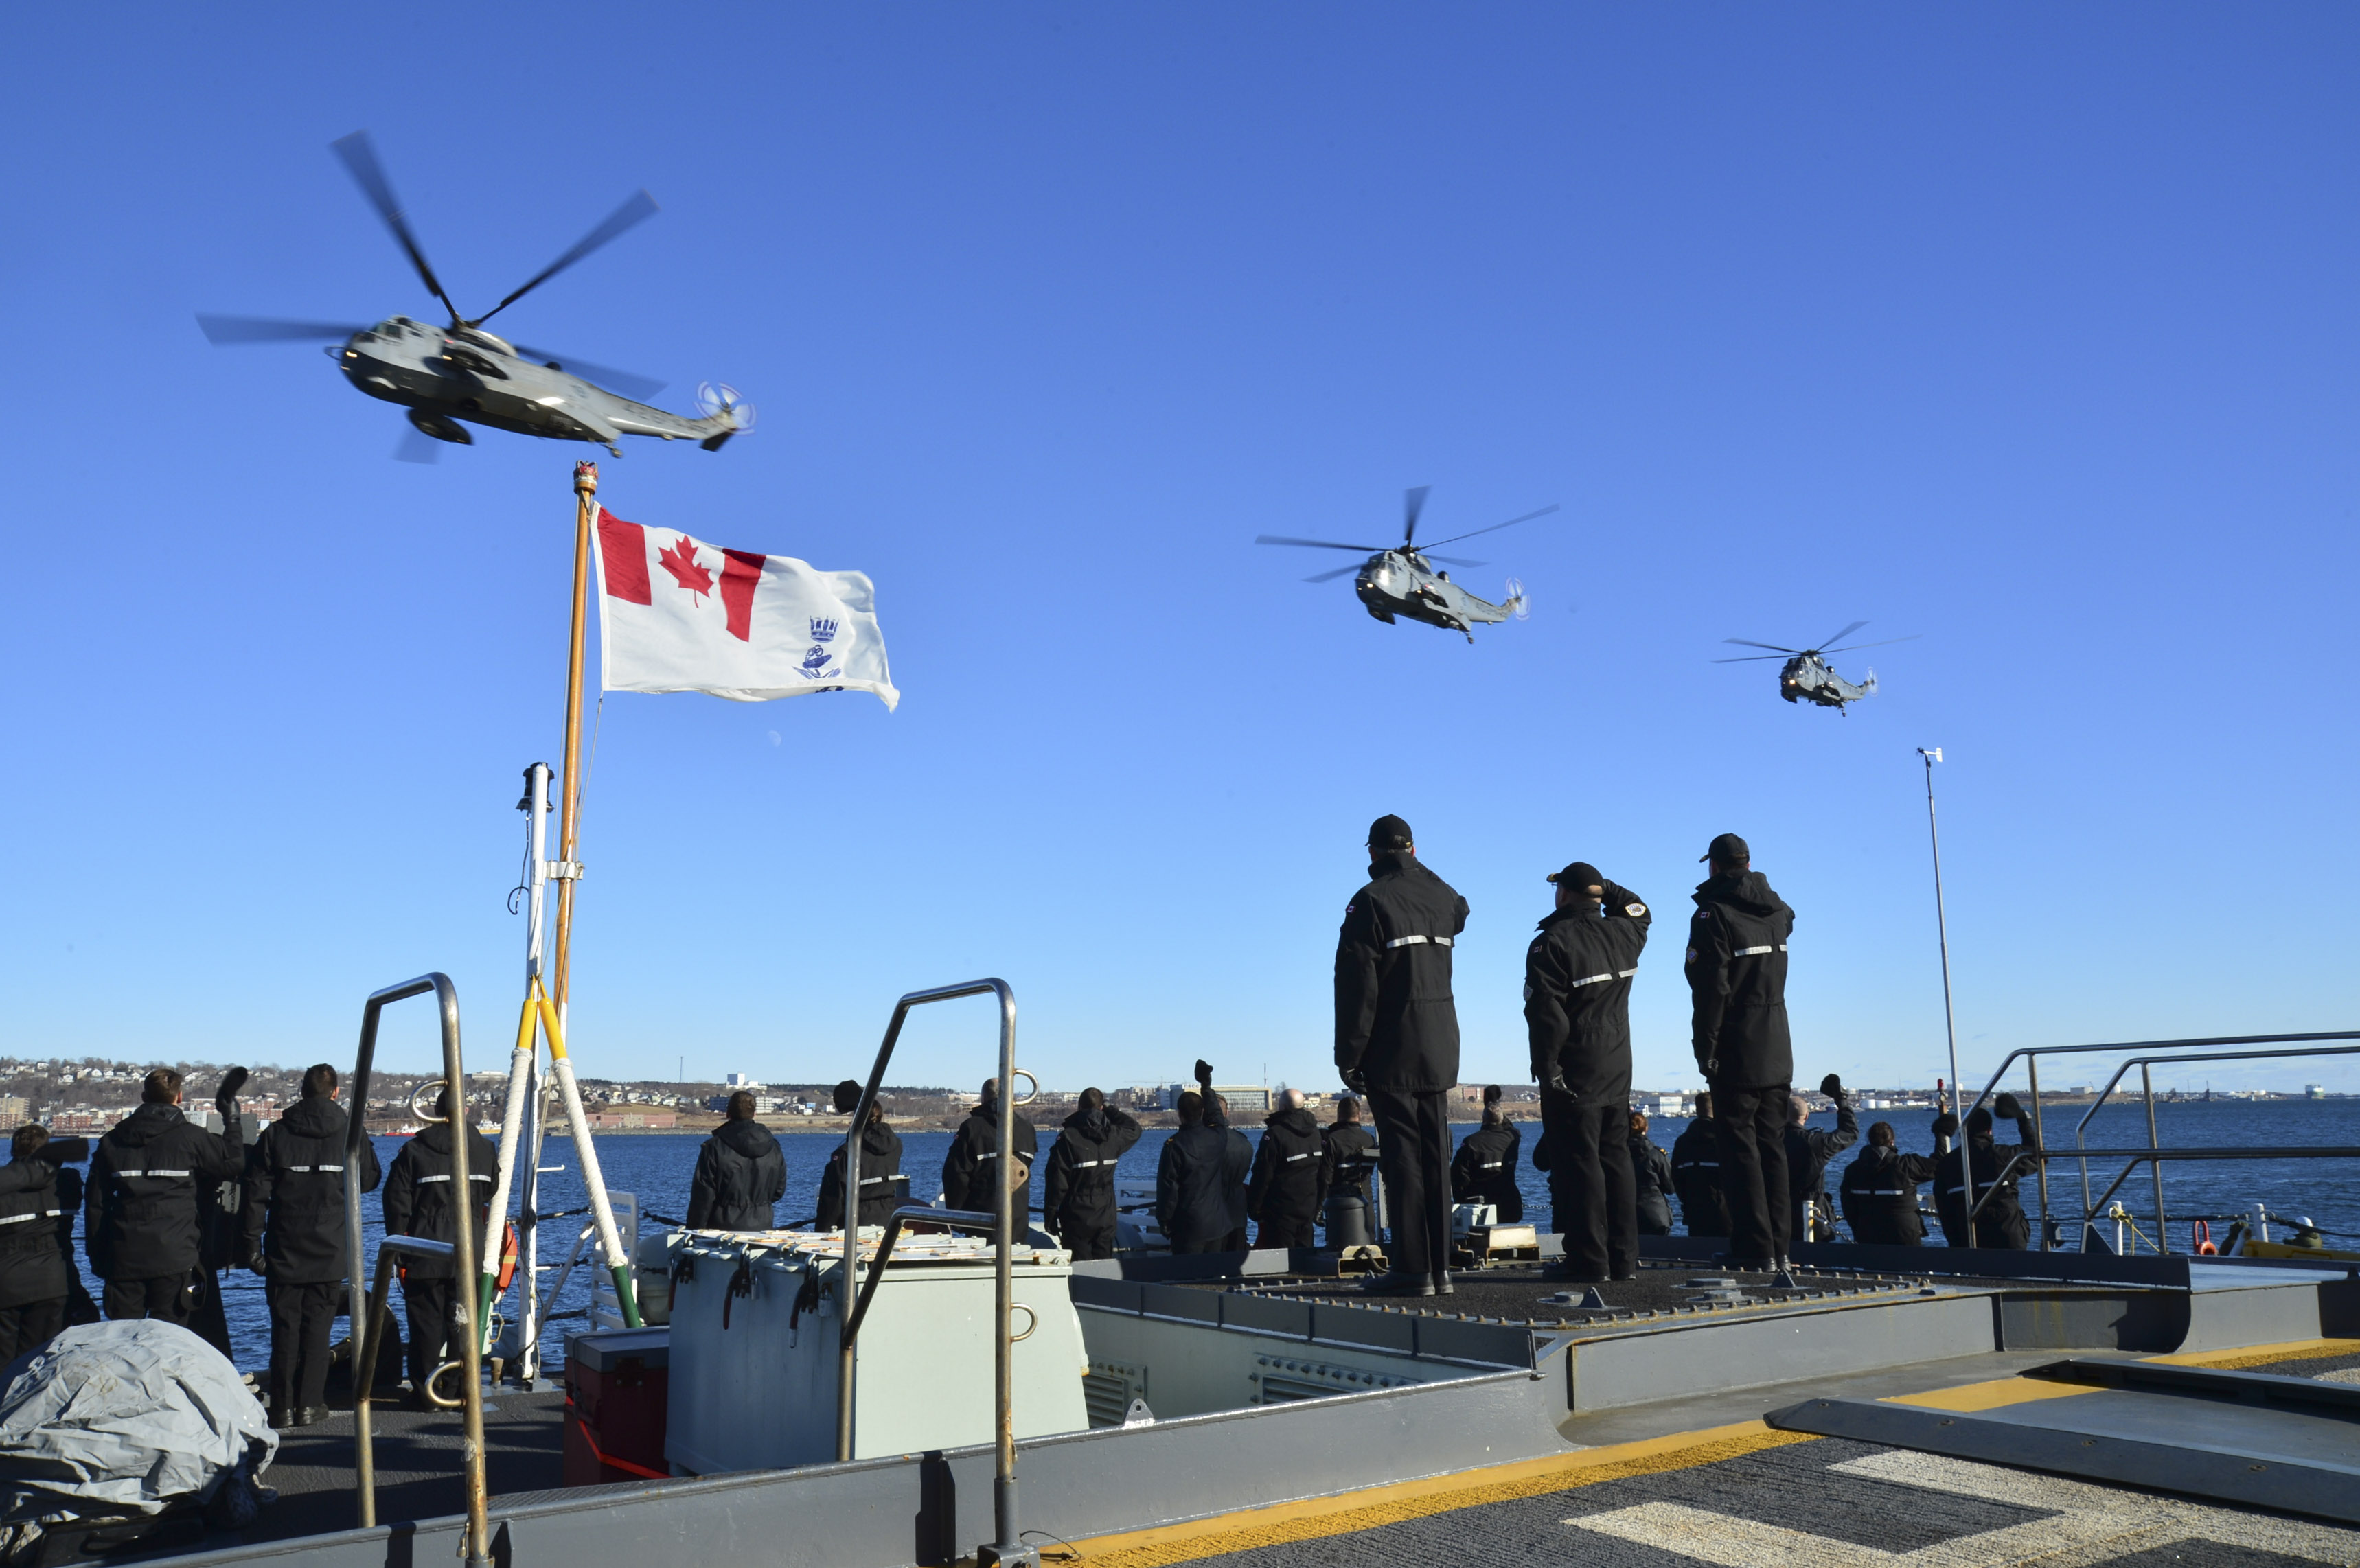 Royal Canadian Navy personnel wave and salute as 423 Maritime Helicopter Squadron conducts its final flight with CH-124 Sea King helicopters over Halifax Harbour on January 26, 2018. The squadron will now focus on transitioning to the CH-148 Cyclone. Sea King operations on the east coast will be carried out by 443 Maritime Helicopter Squadron, which belongs to 12 Wing Shearwater, Nova Scotia, but is based at Patricia Bay, British Columbia, until the Sea Kings retire at the end of 2018. PHOTO: DND